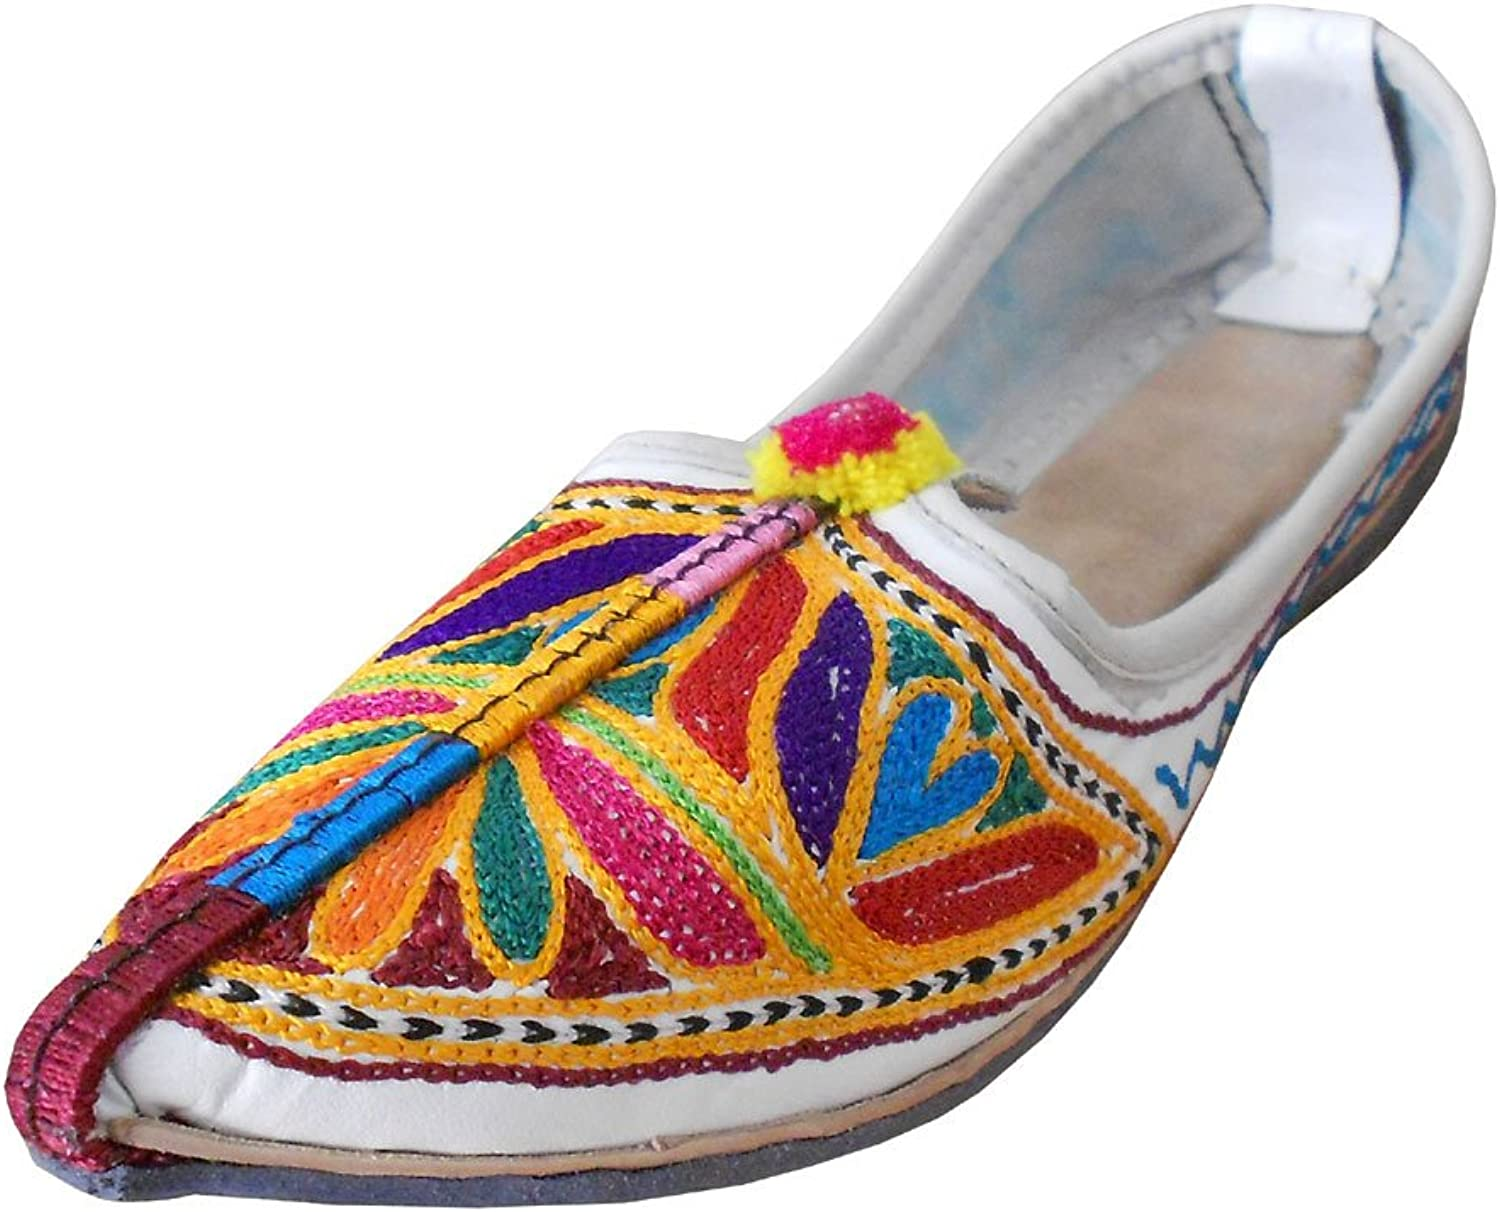 Kalra Creations Women's Traditional Indian Mojari Leather With Embroidery Loafer Flats